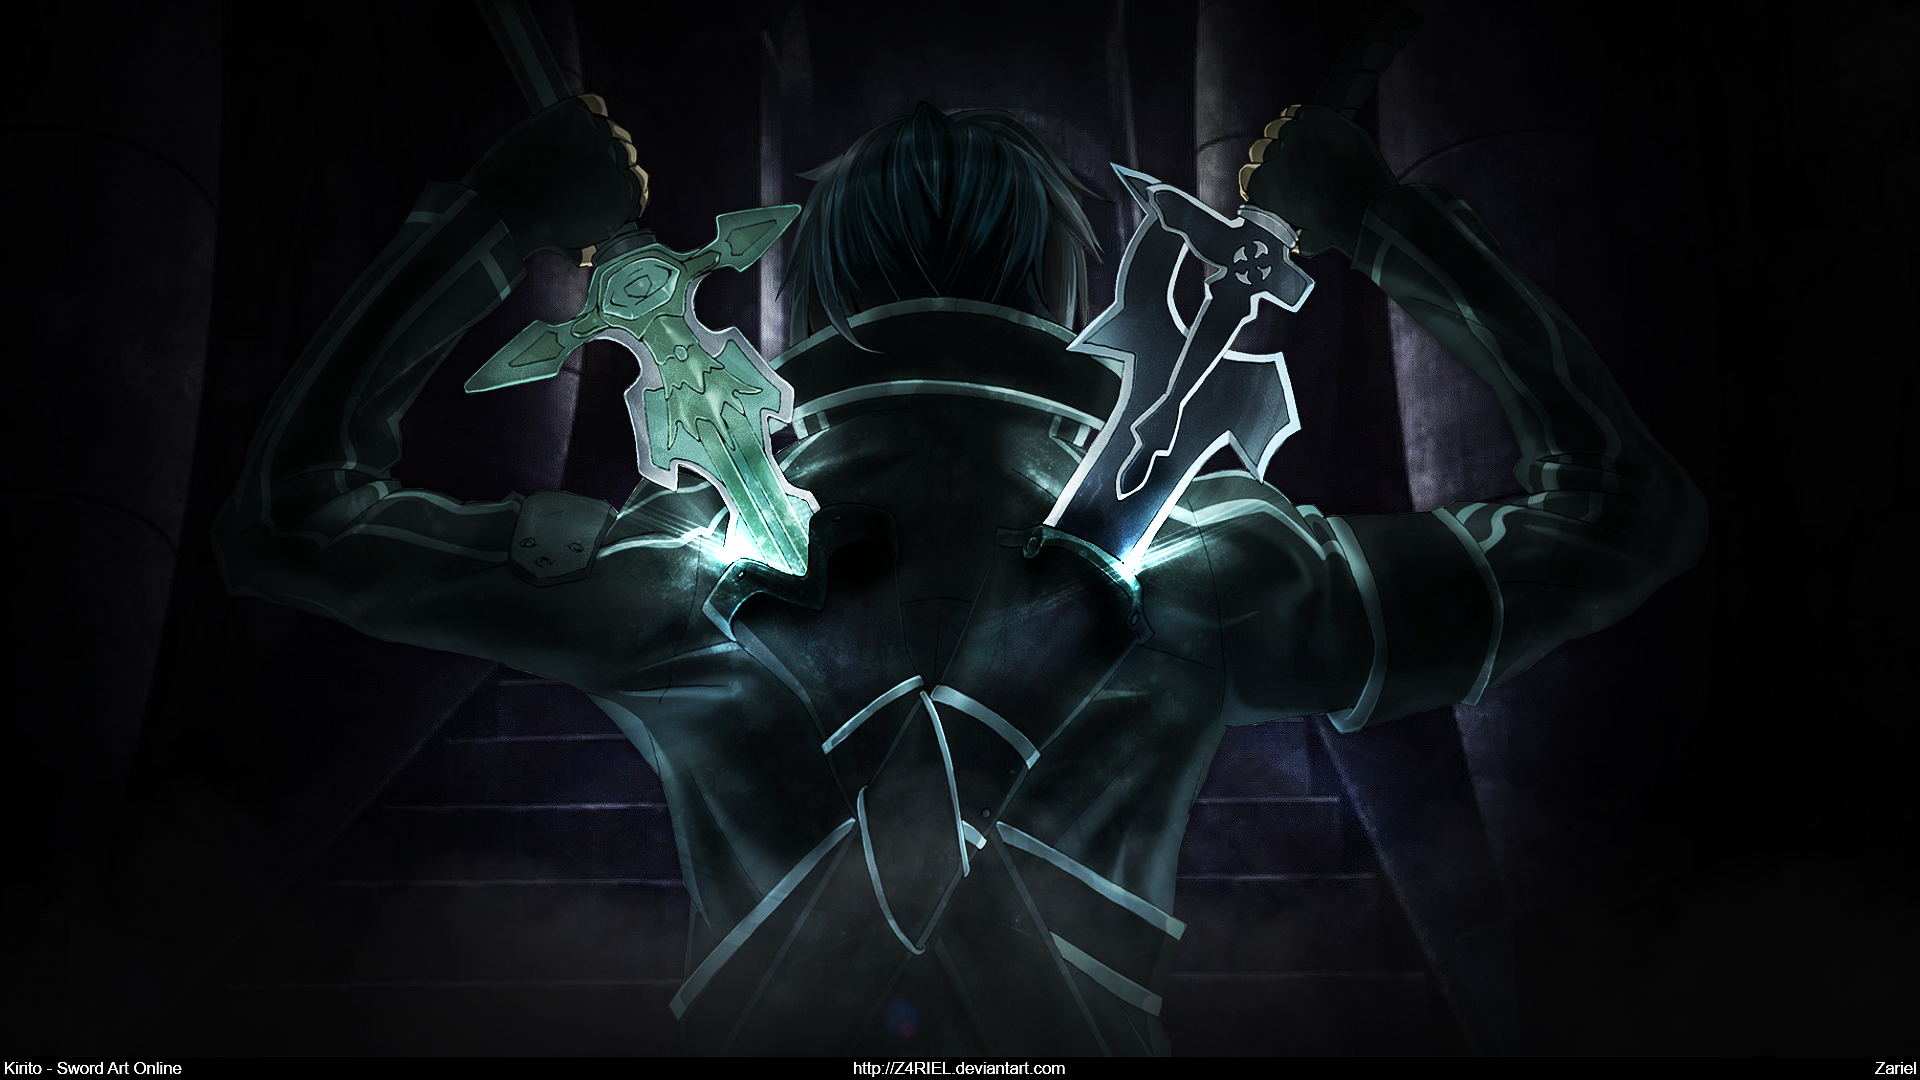 sword art online - kirito dual blades [wallpaper]z4riel on